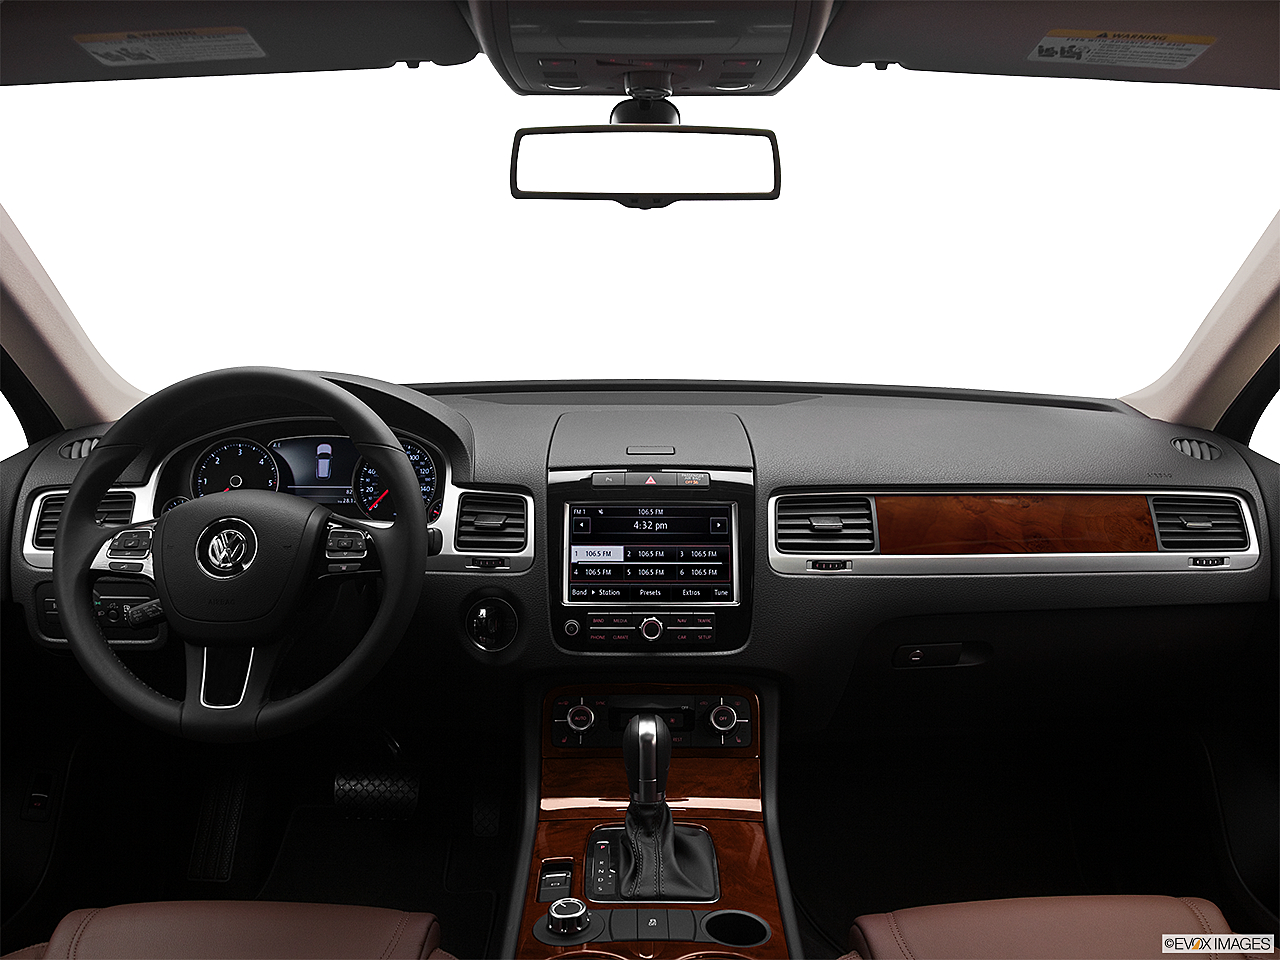 2012 Volkswagen Touareg TDI Lux, centered wide dash shot